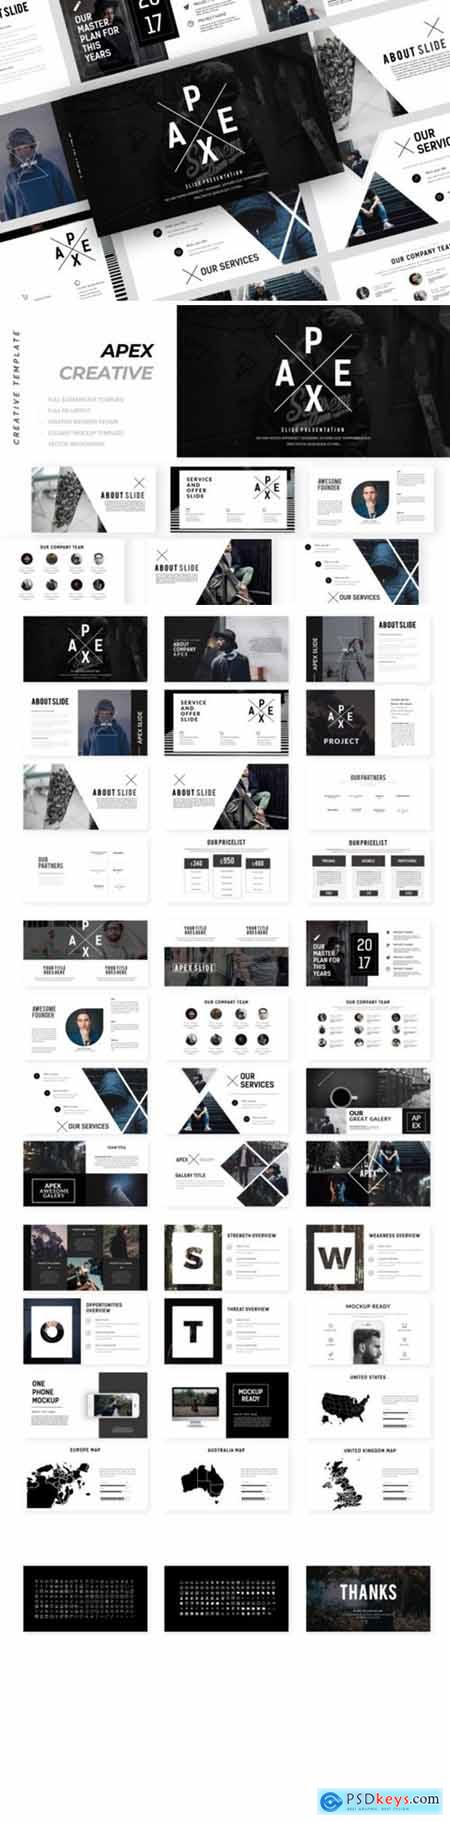 Apex Creative Powerpoint, Keynote and Google Slides Templates